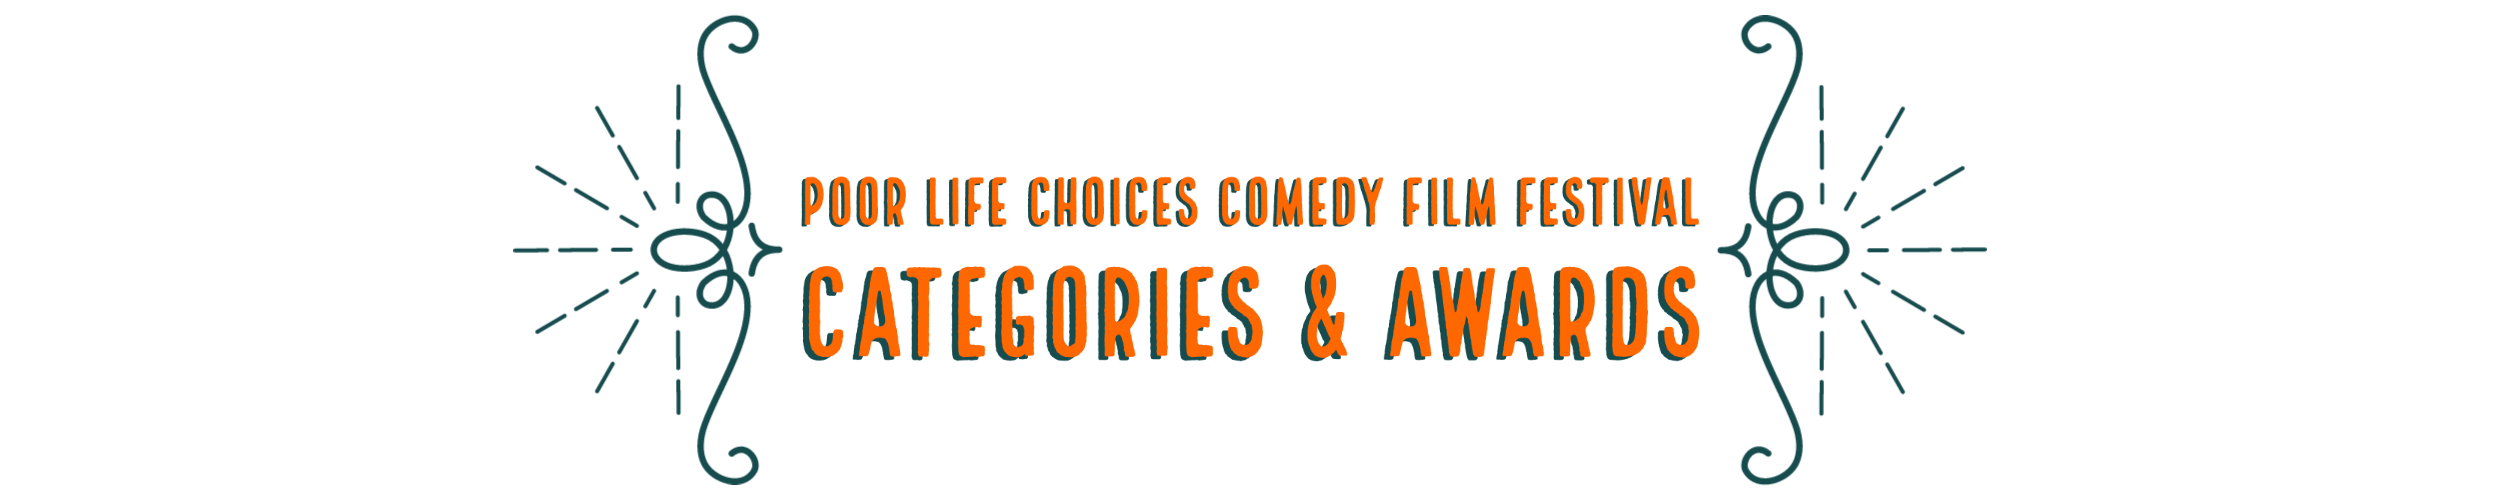 POOR LIFE CHOICES COMEDY FILM FESTIVAL CATEGORIES AWARDS